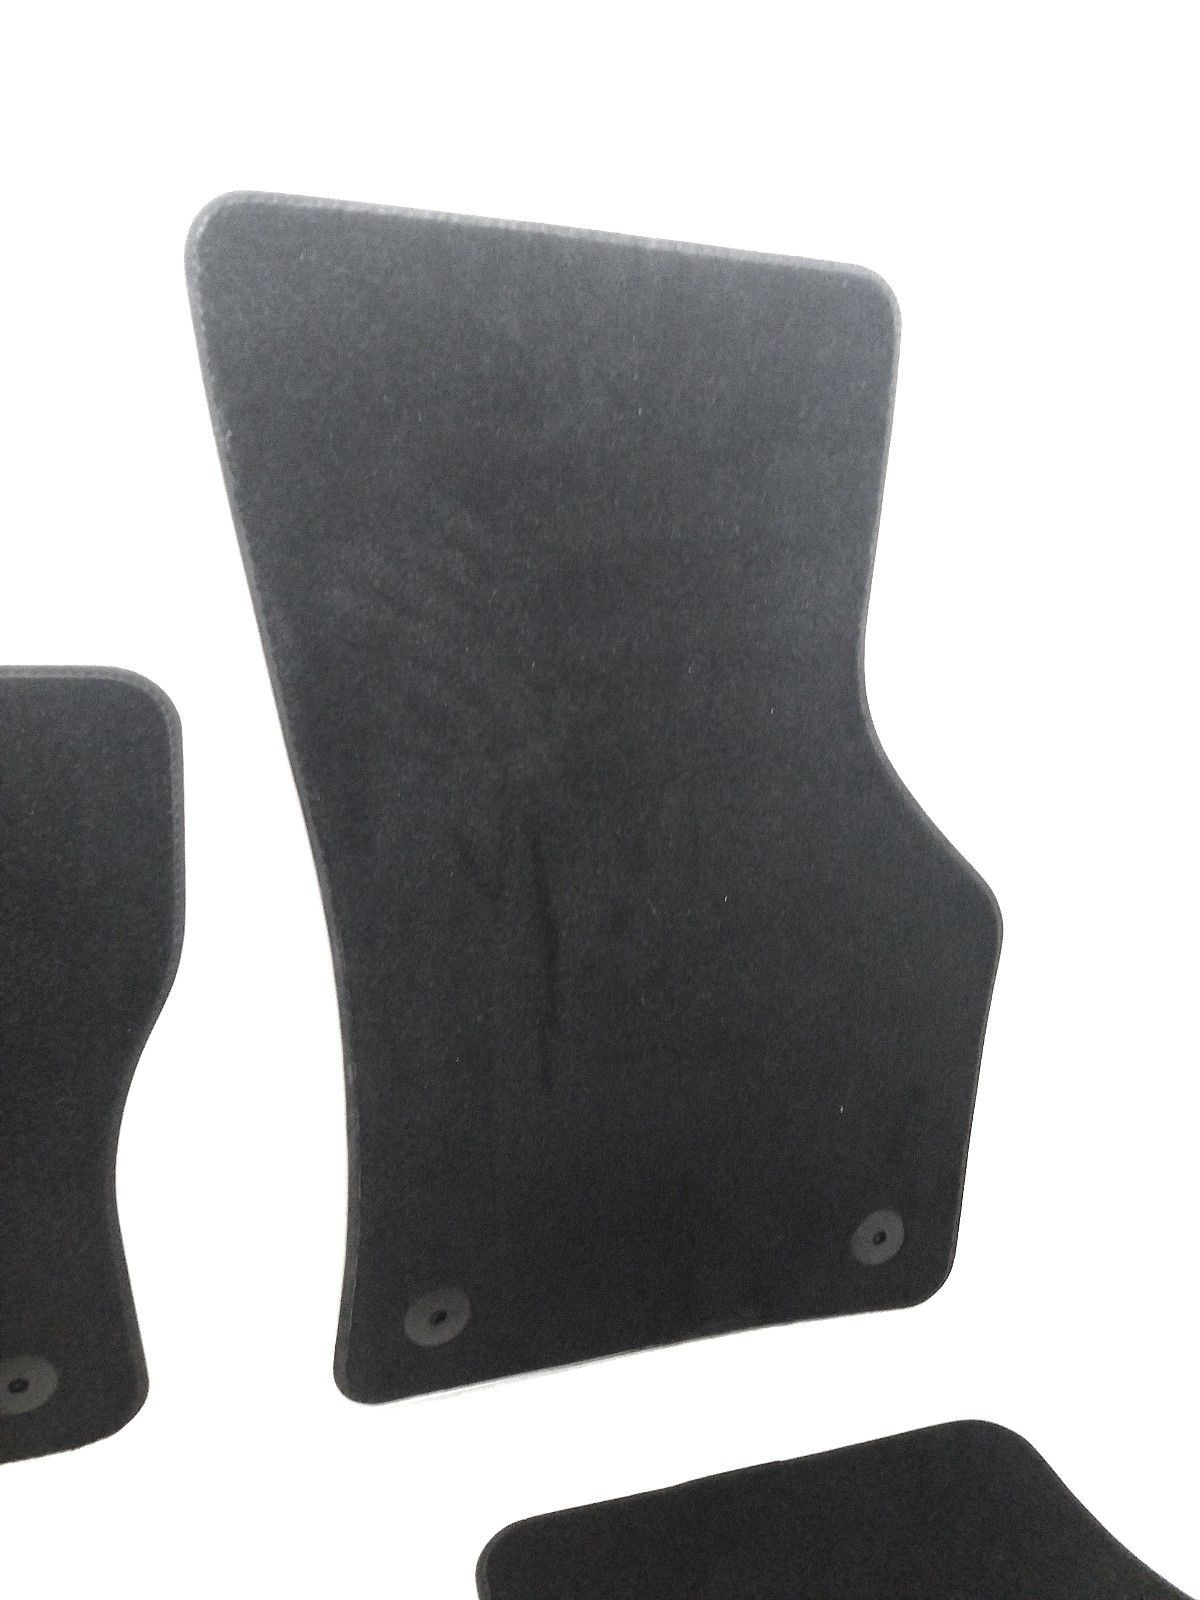 2014-2017 Volkswagen VW Golf/GTI/R Set of 4 OEM Carpet Floor Mats 5GM-864-436  Does not apply DDW-1828-GW4